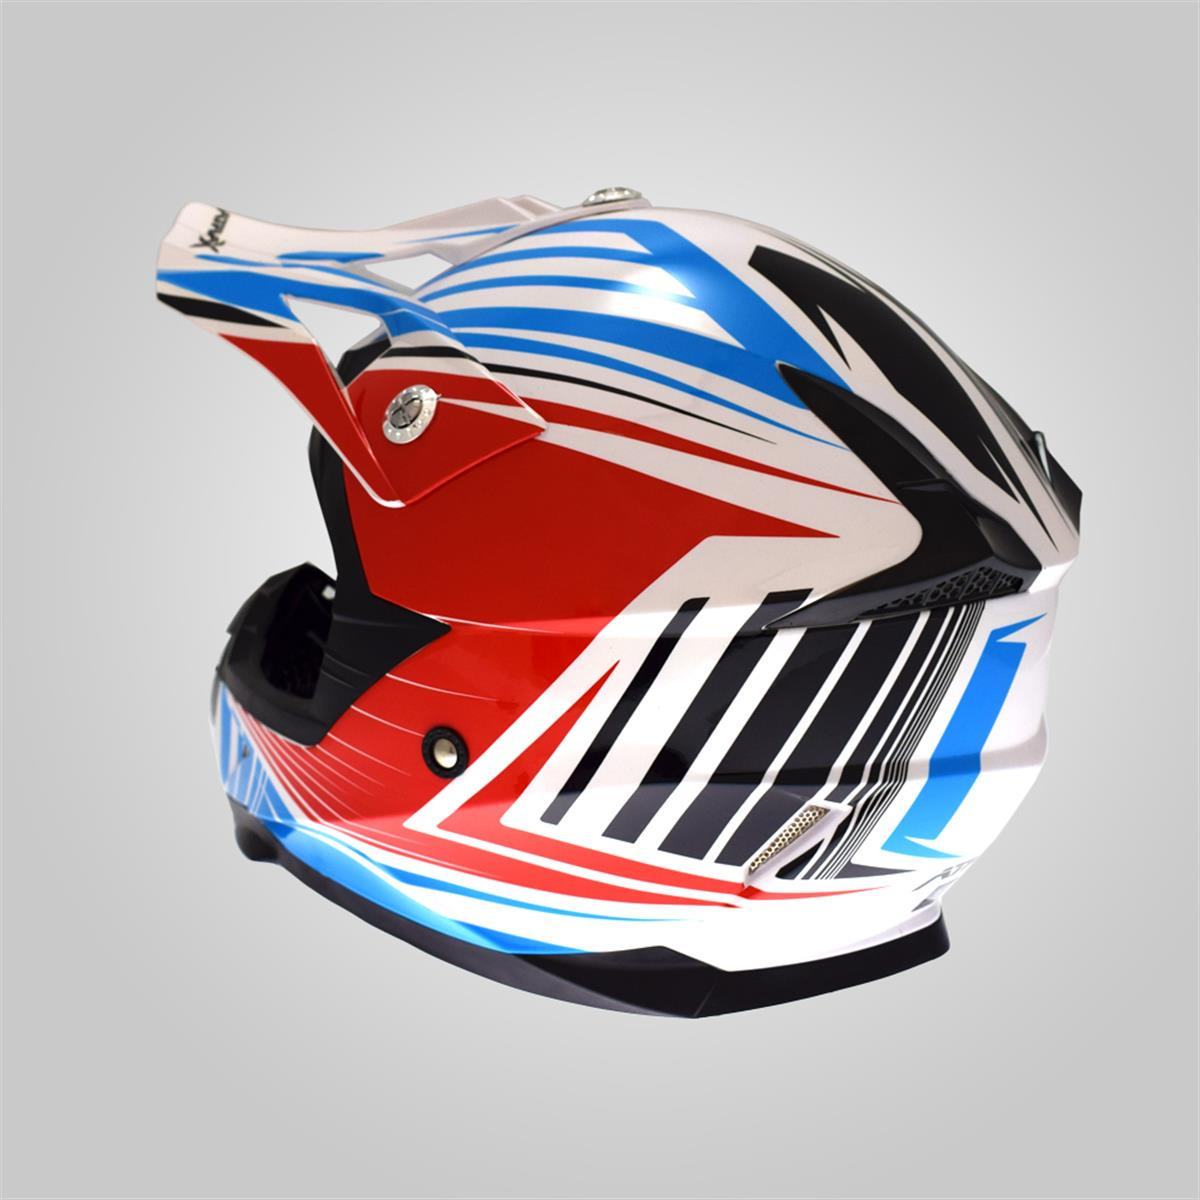 98cf57e9e098b0 Casque cross Atrax enfant taille S   Smallmx - Dirt bike, Pit bike ...